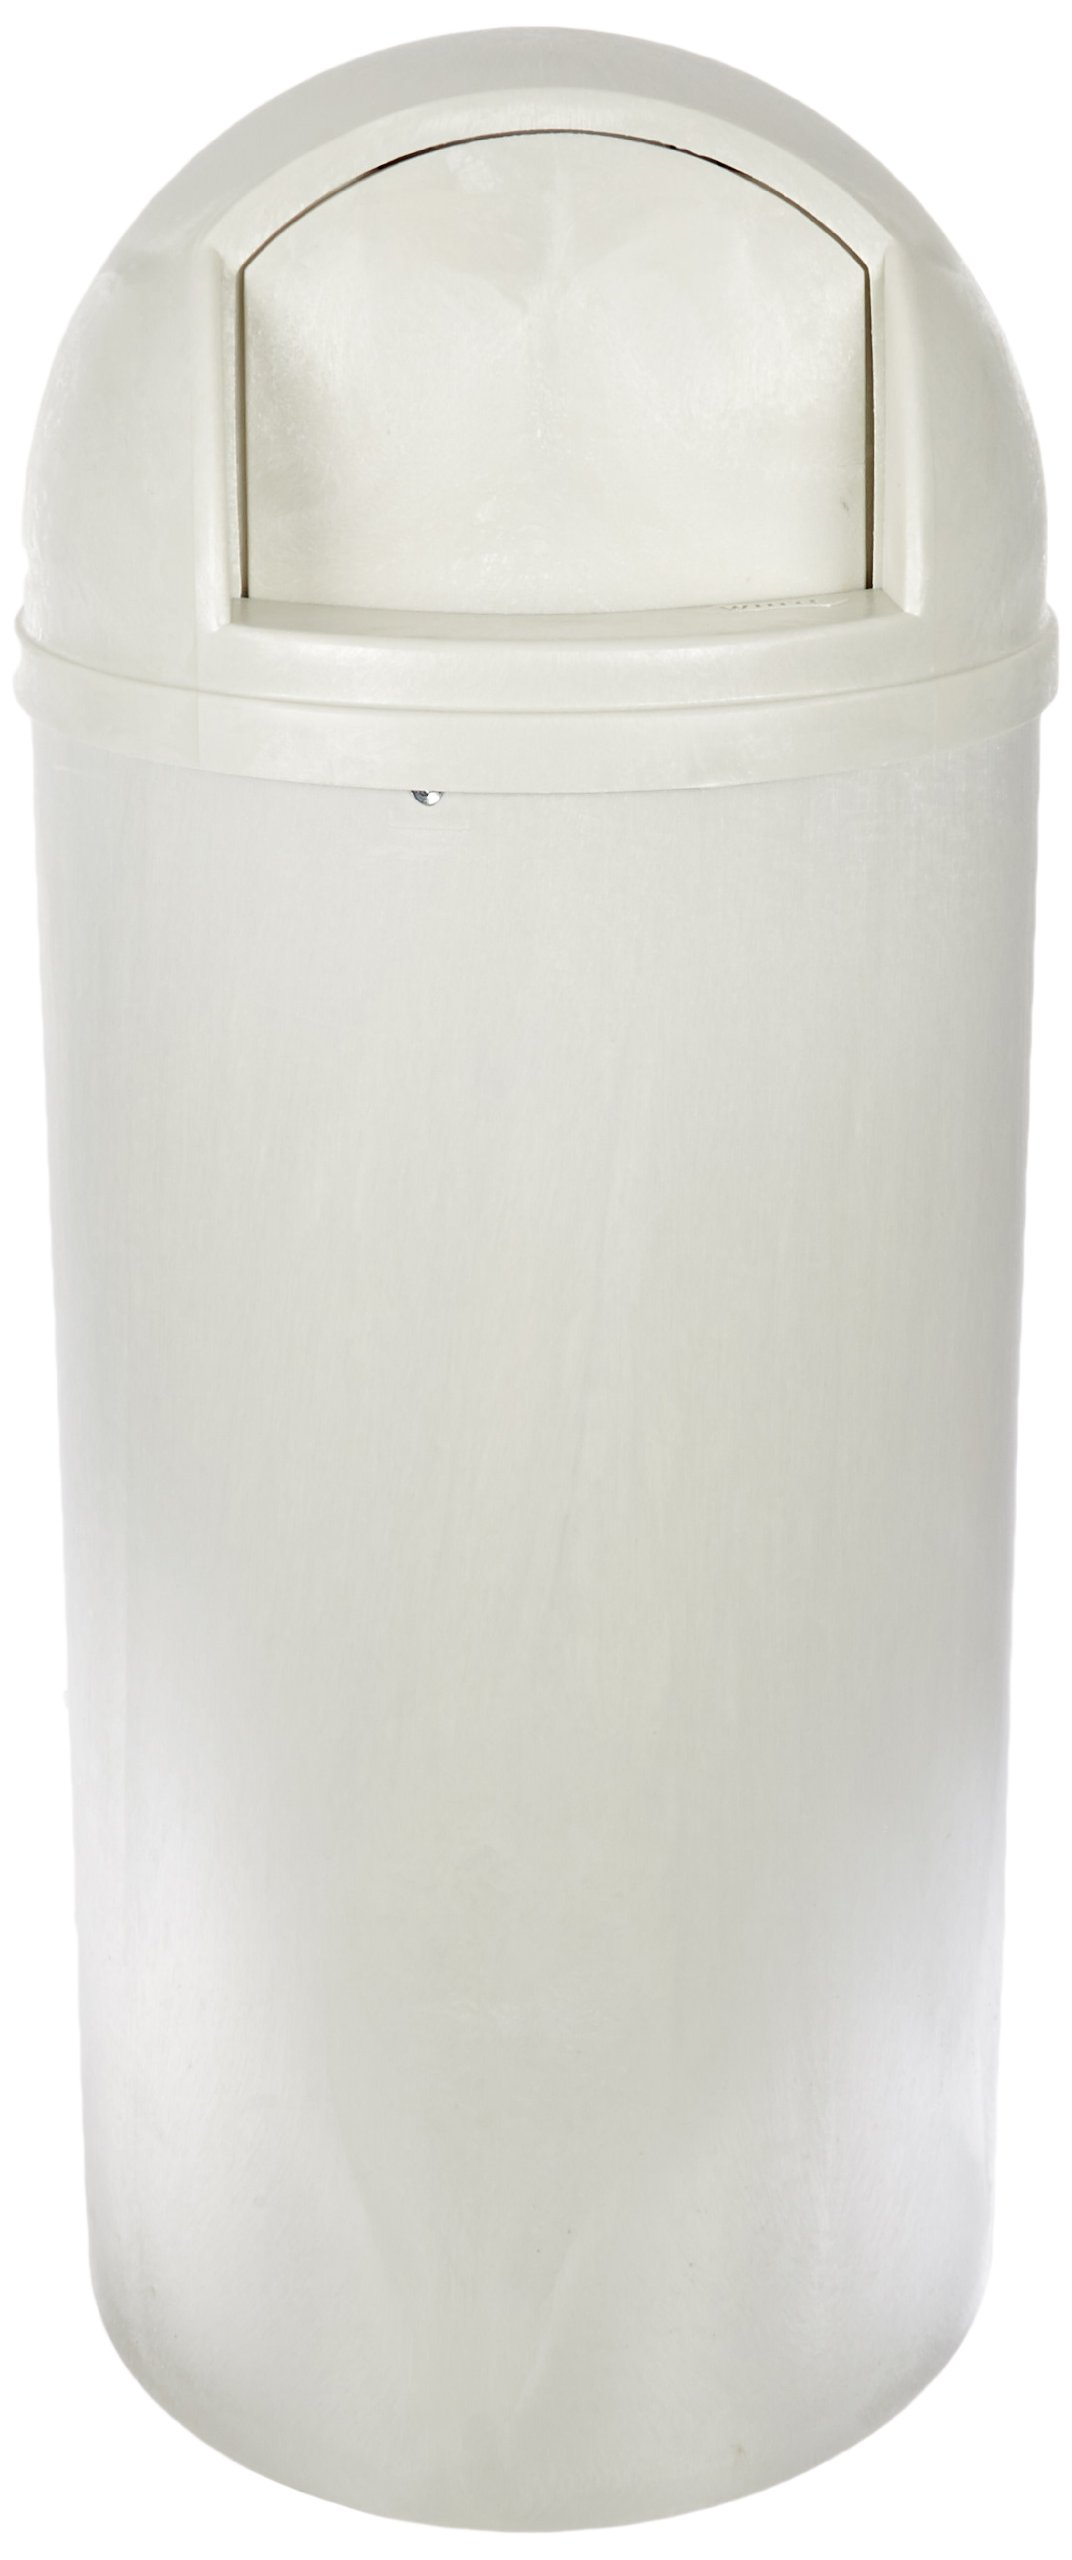 Impact 8870-17 Plastic Indoor and Outdoor Bullet Receptacle, 21-Gallon Capacity, 18-1/4'' Diameter x 40-3/4'' Height, Oyster by Impact Products